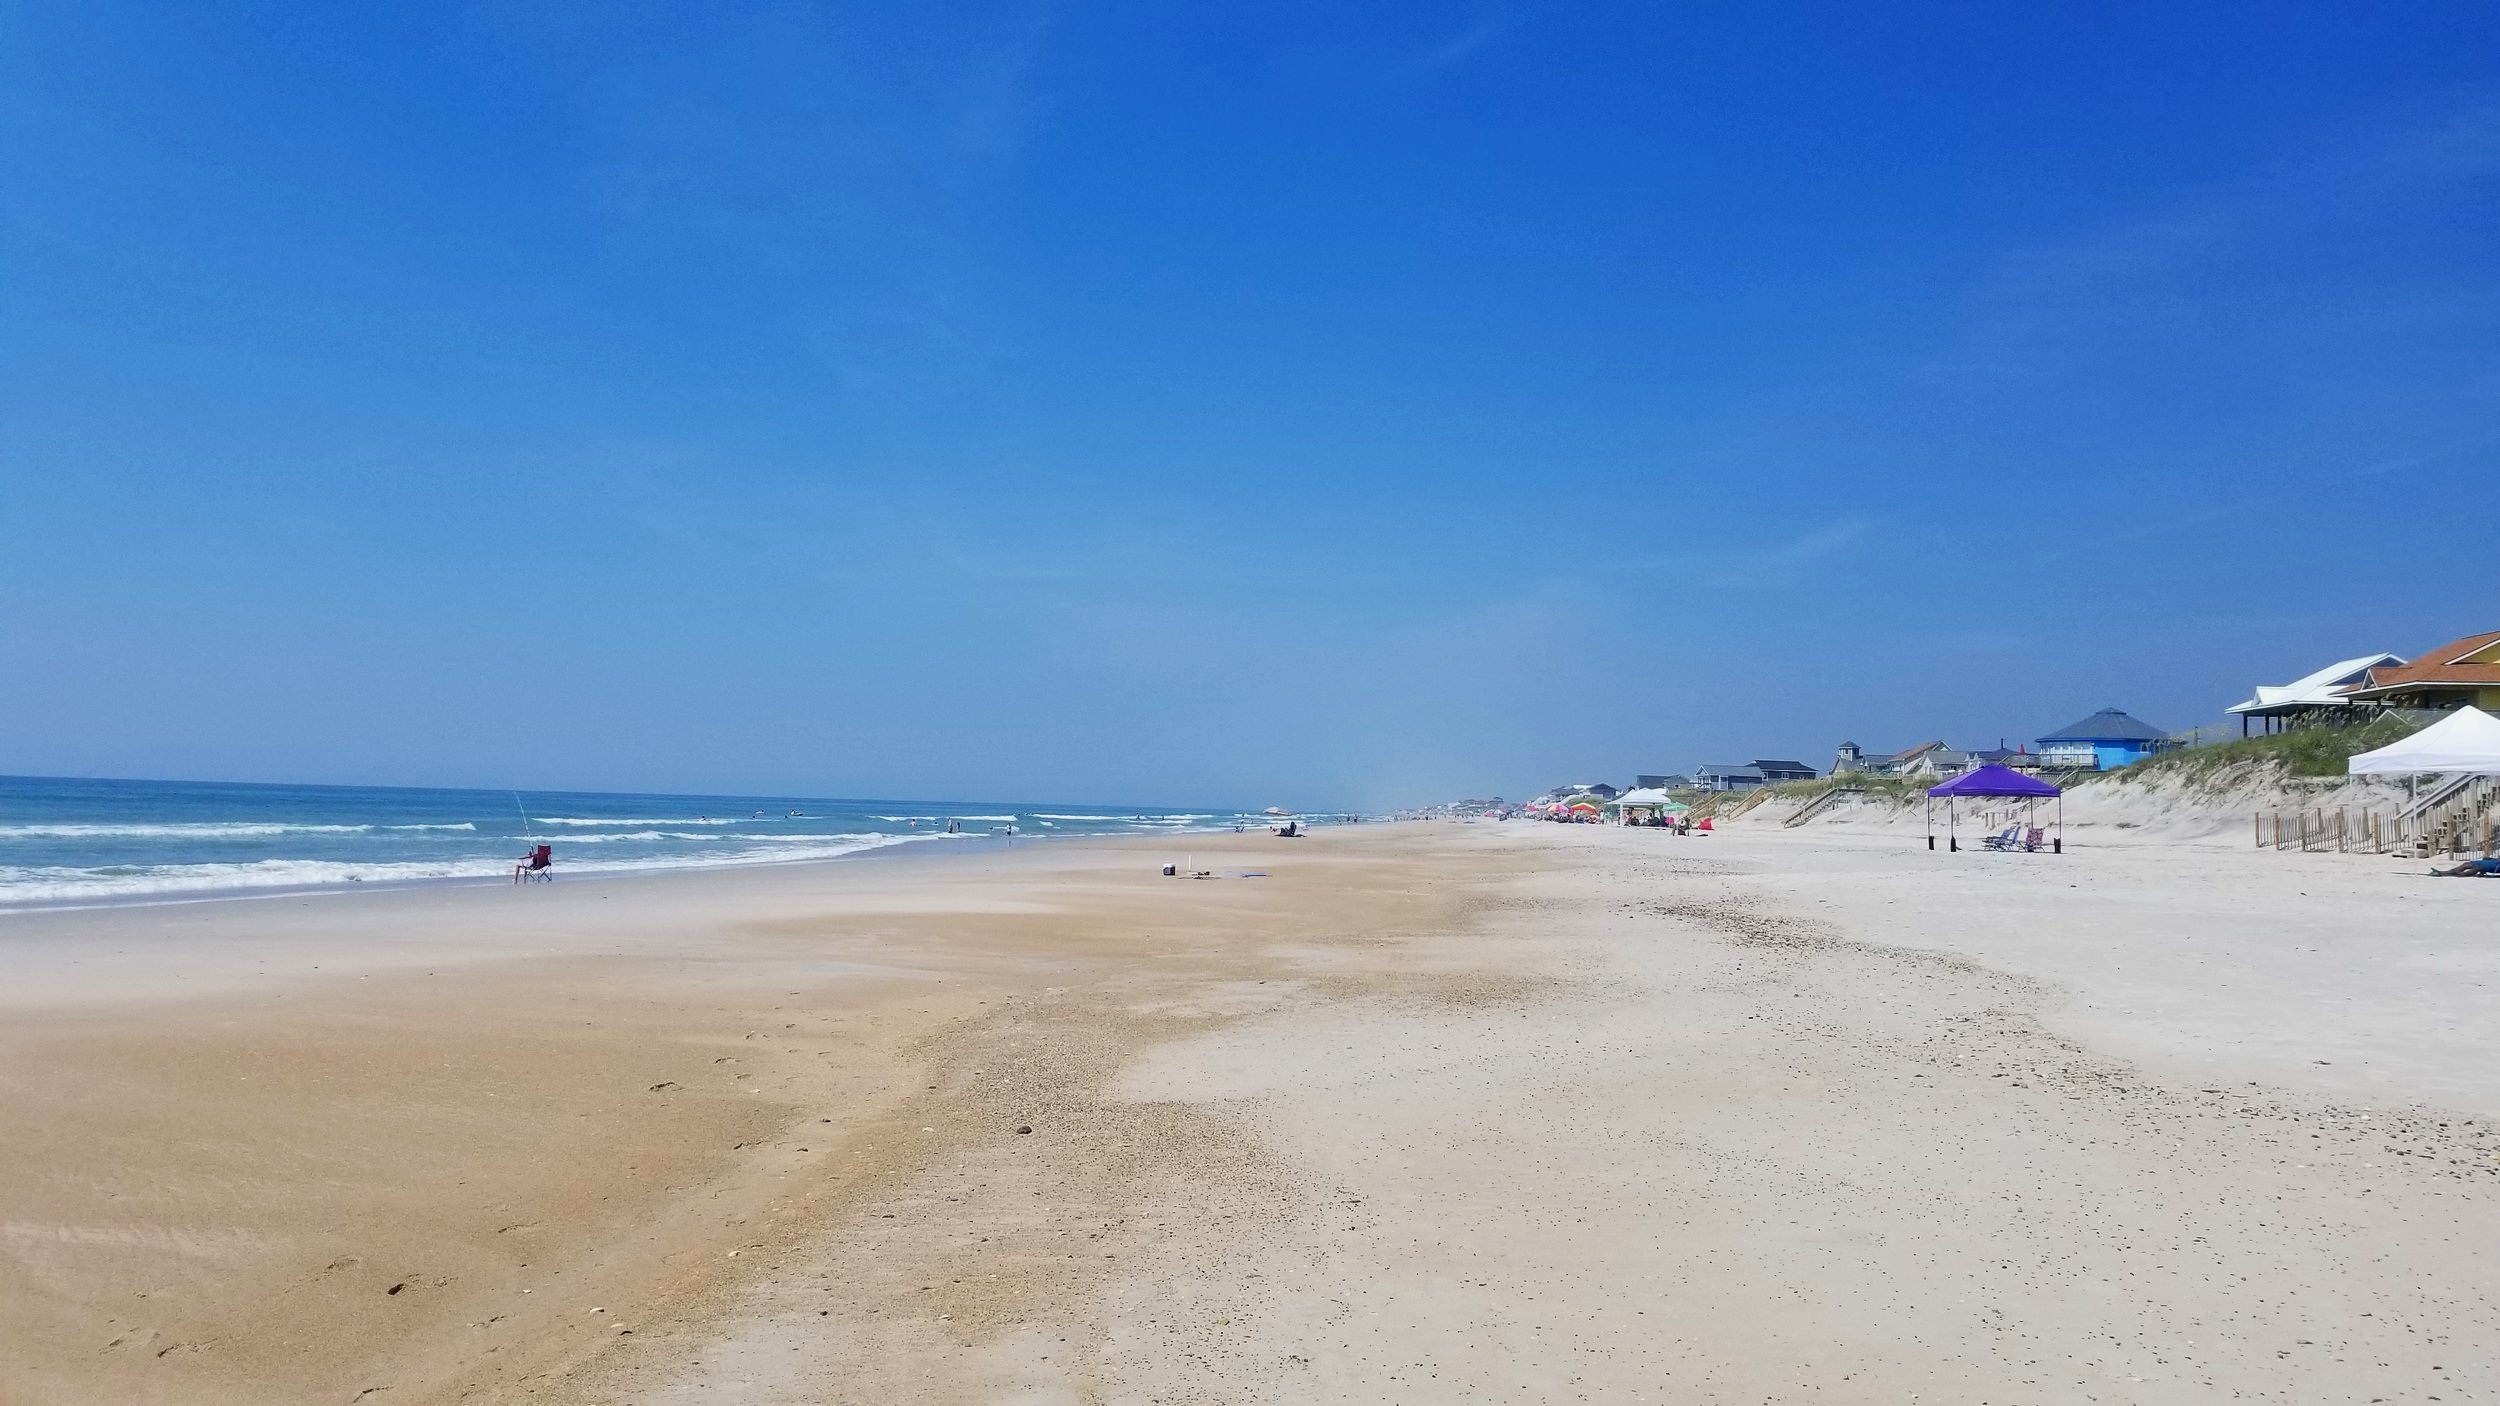 North Topsail Beach near Jacksonville, NC provides great public access to the Atlantic Ocean.